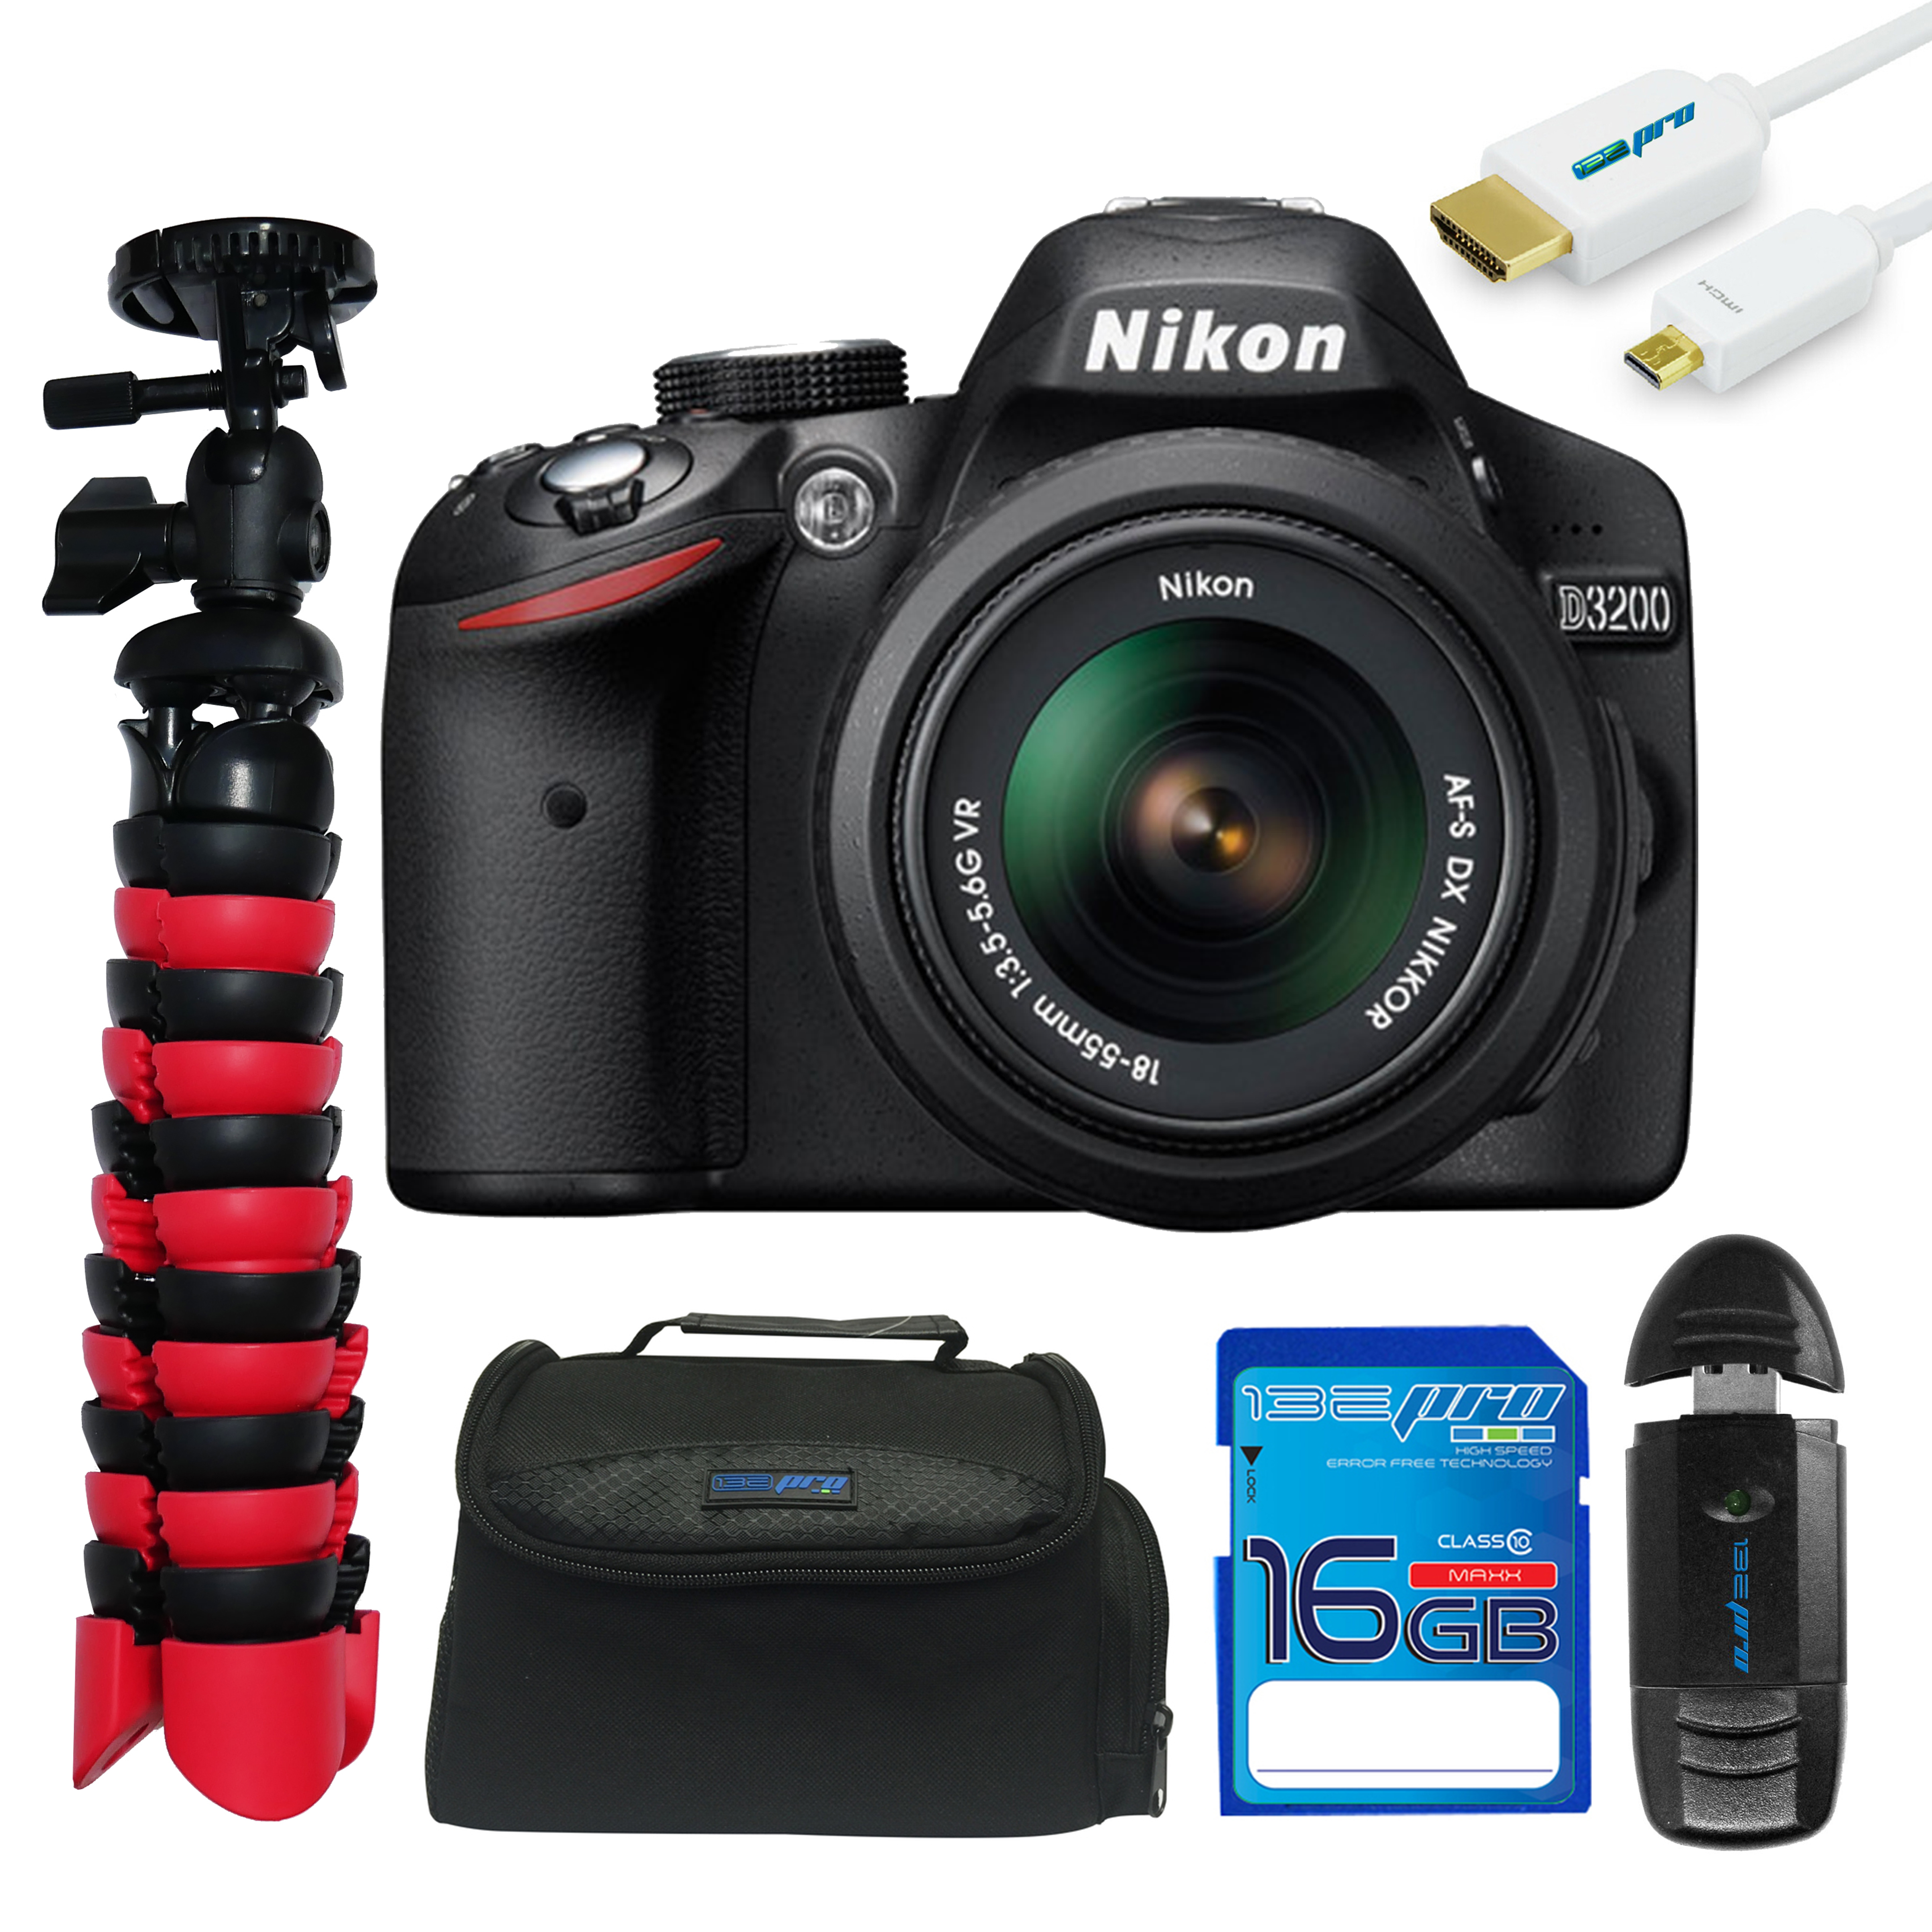 Nikon D3200 DSLR Camera with 18-55mm Lens + Pixi Essentials Kit